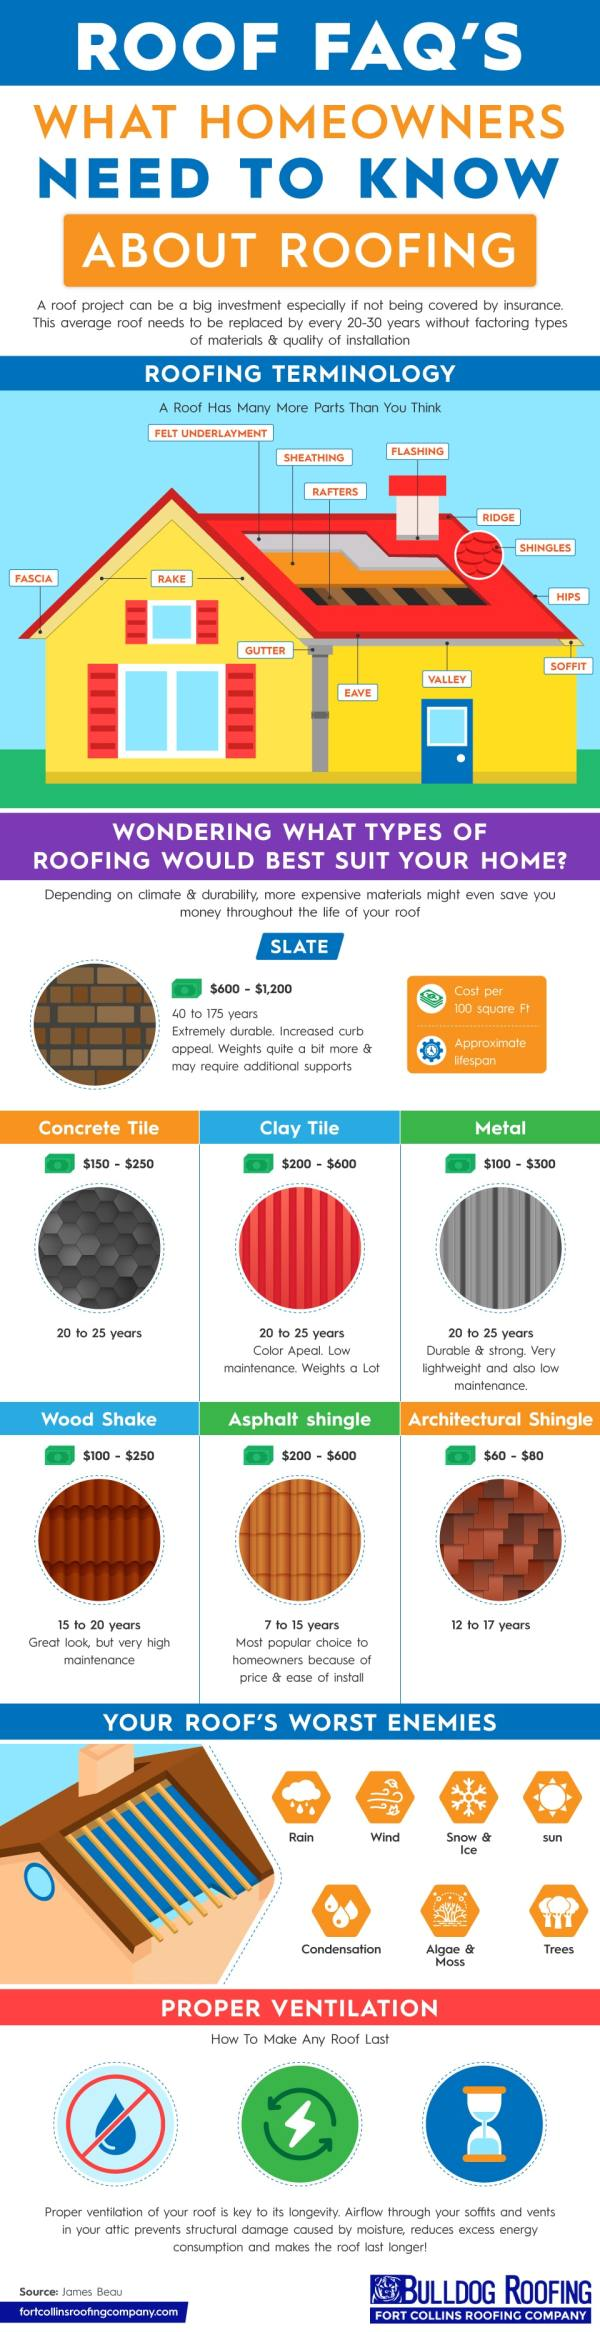 Roofing-infographic-what-homeowners-need-to-know-about-their-roof-infographic-lkrllc